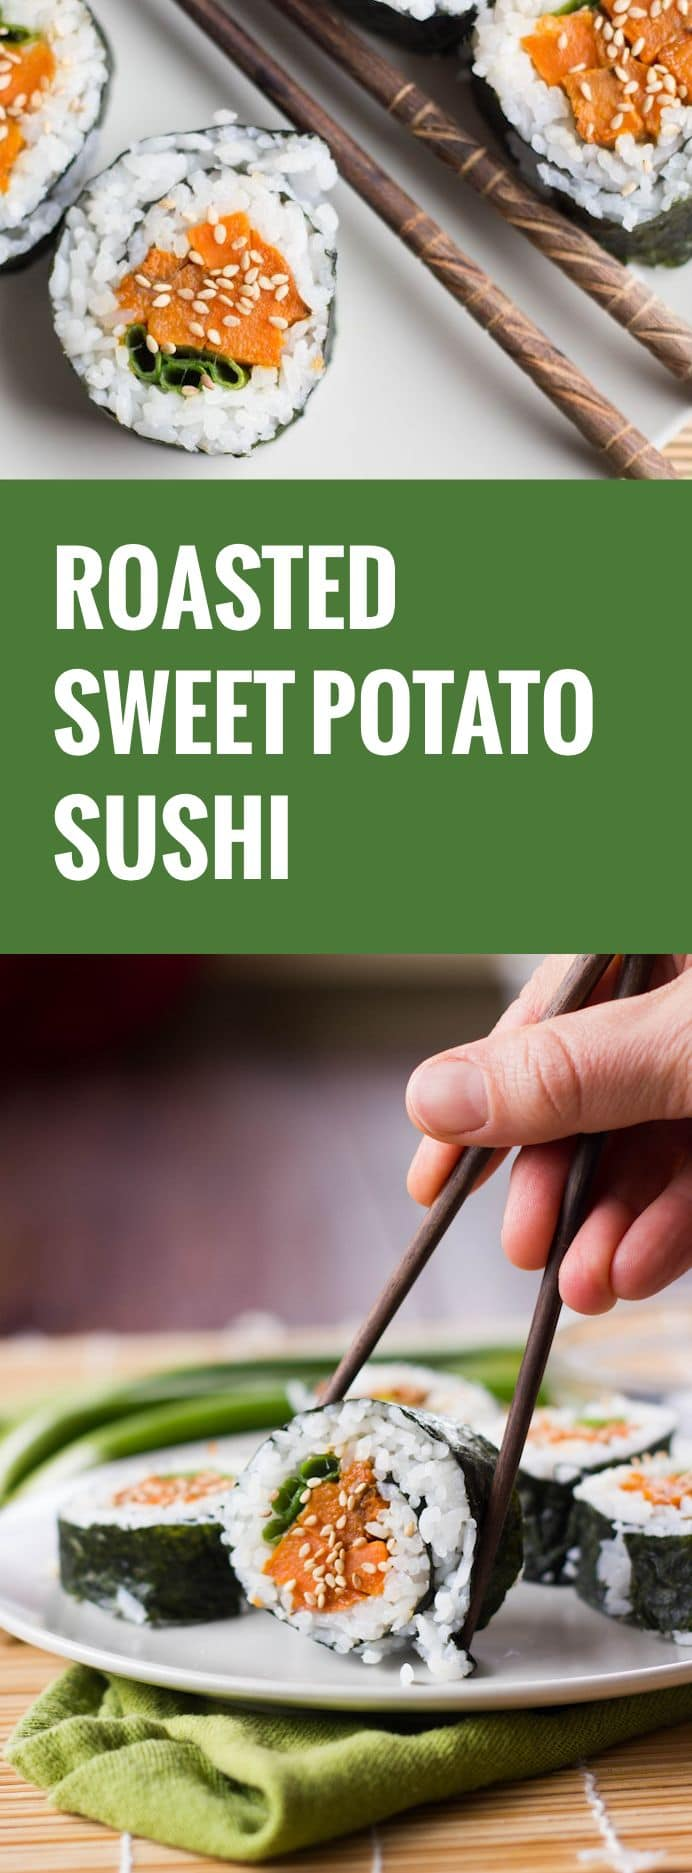 Roasted Sweet Potato Sushi